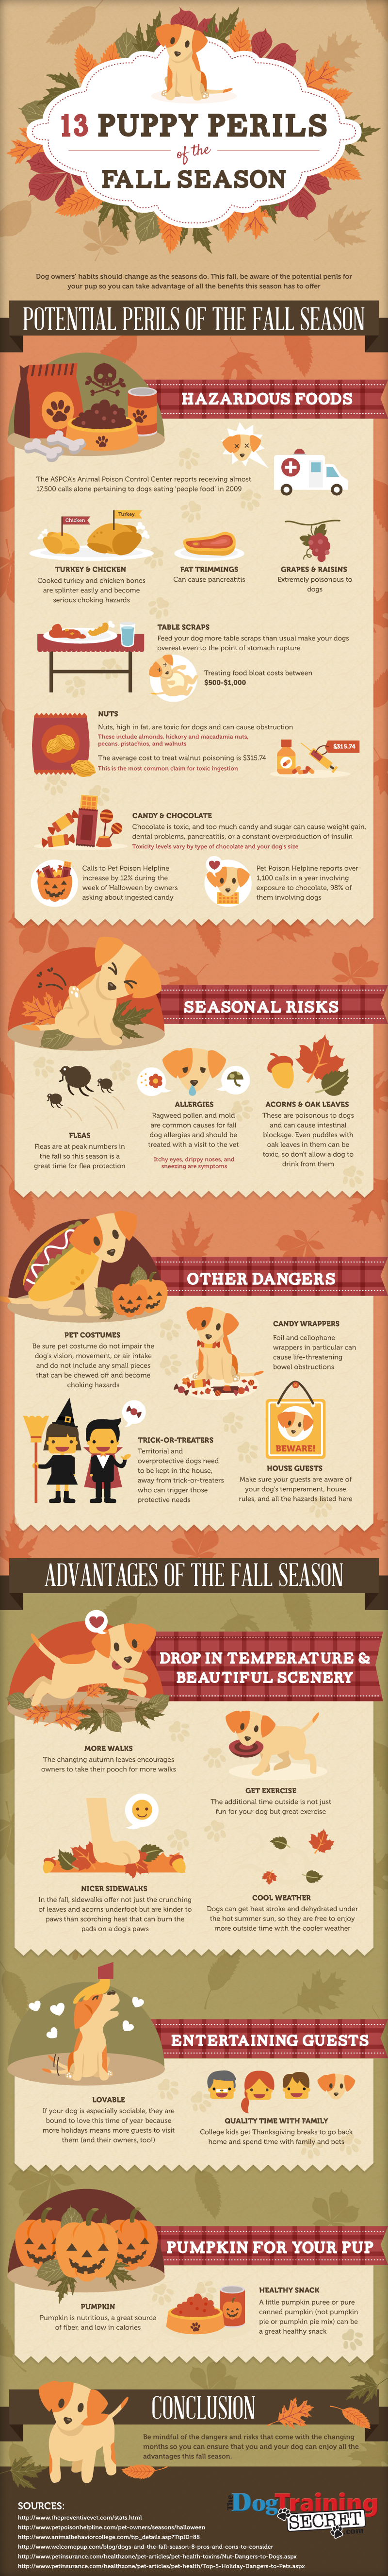 13 Puppy Perils of The Fall Season